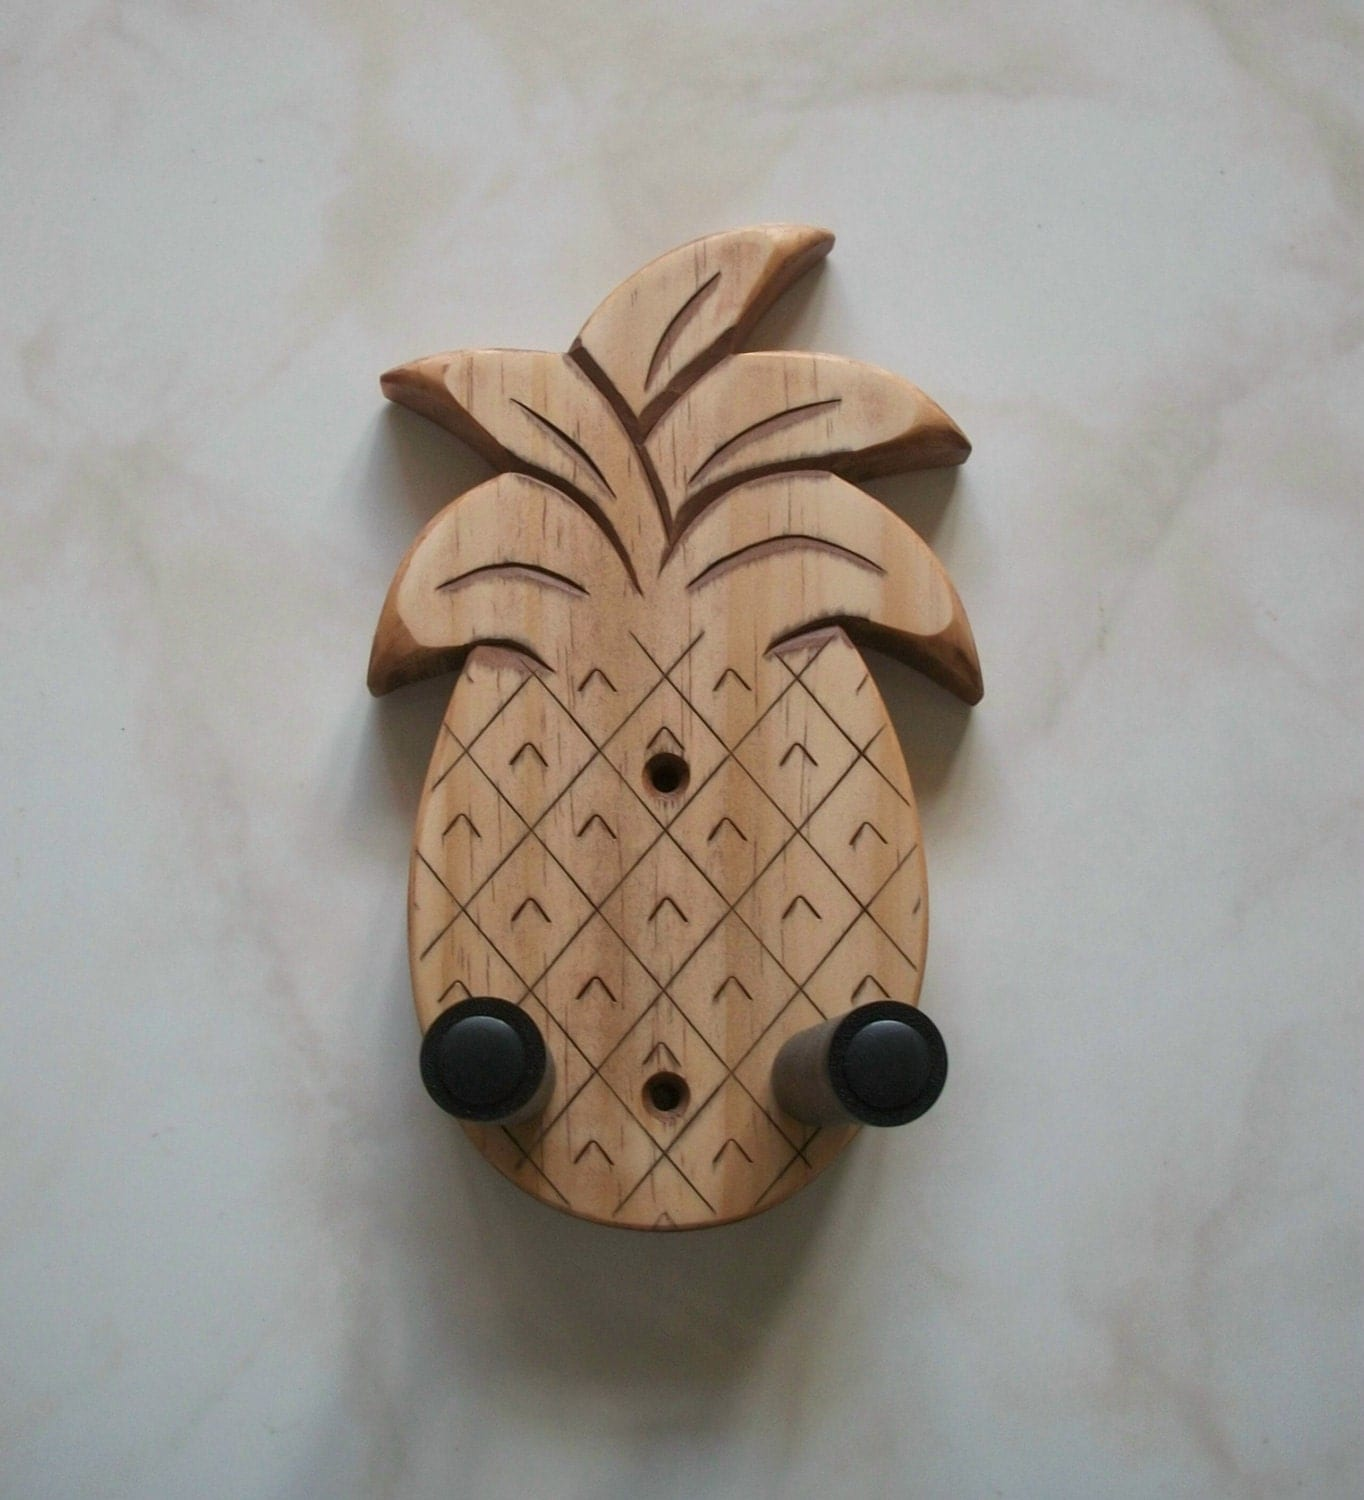 unique ukulele wall mount hanger hand carved pineapple pecan. Black Bedroom Furniture Sets. Home Design Ideas